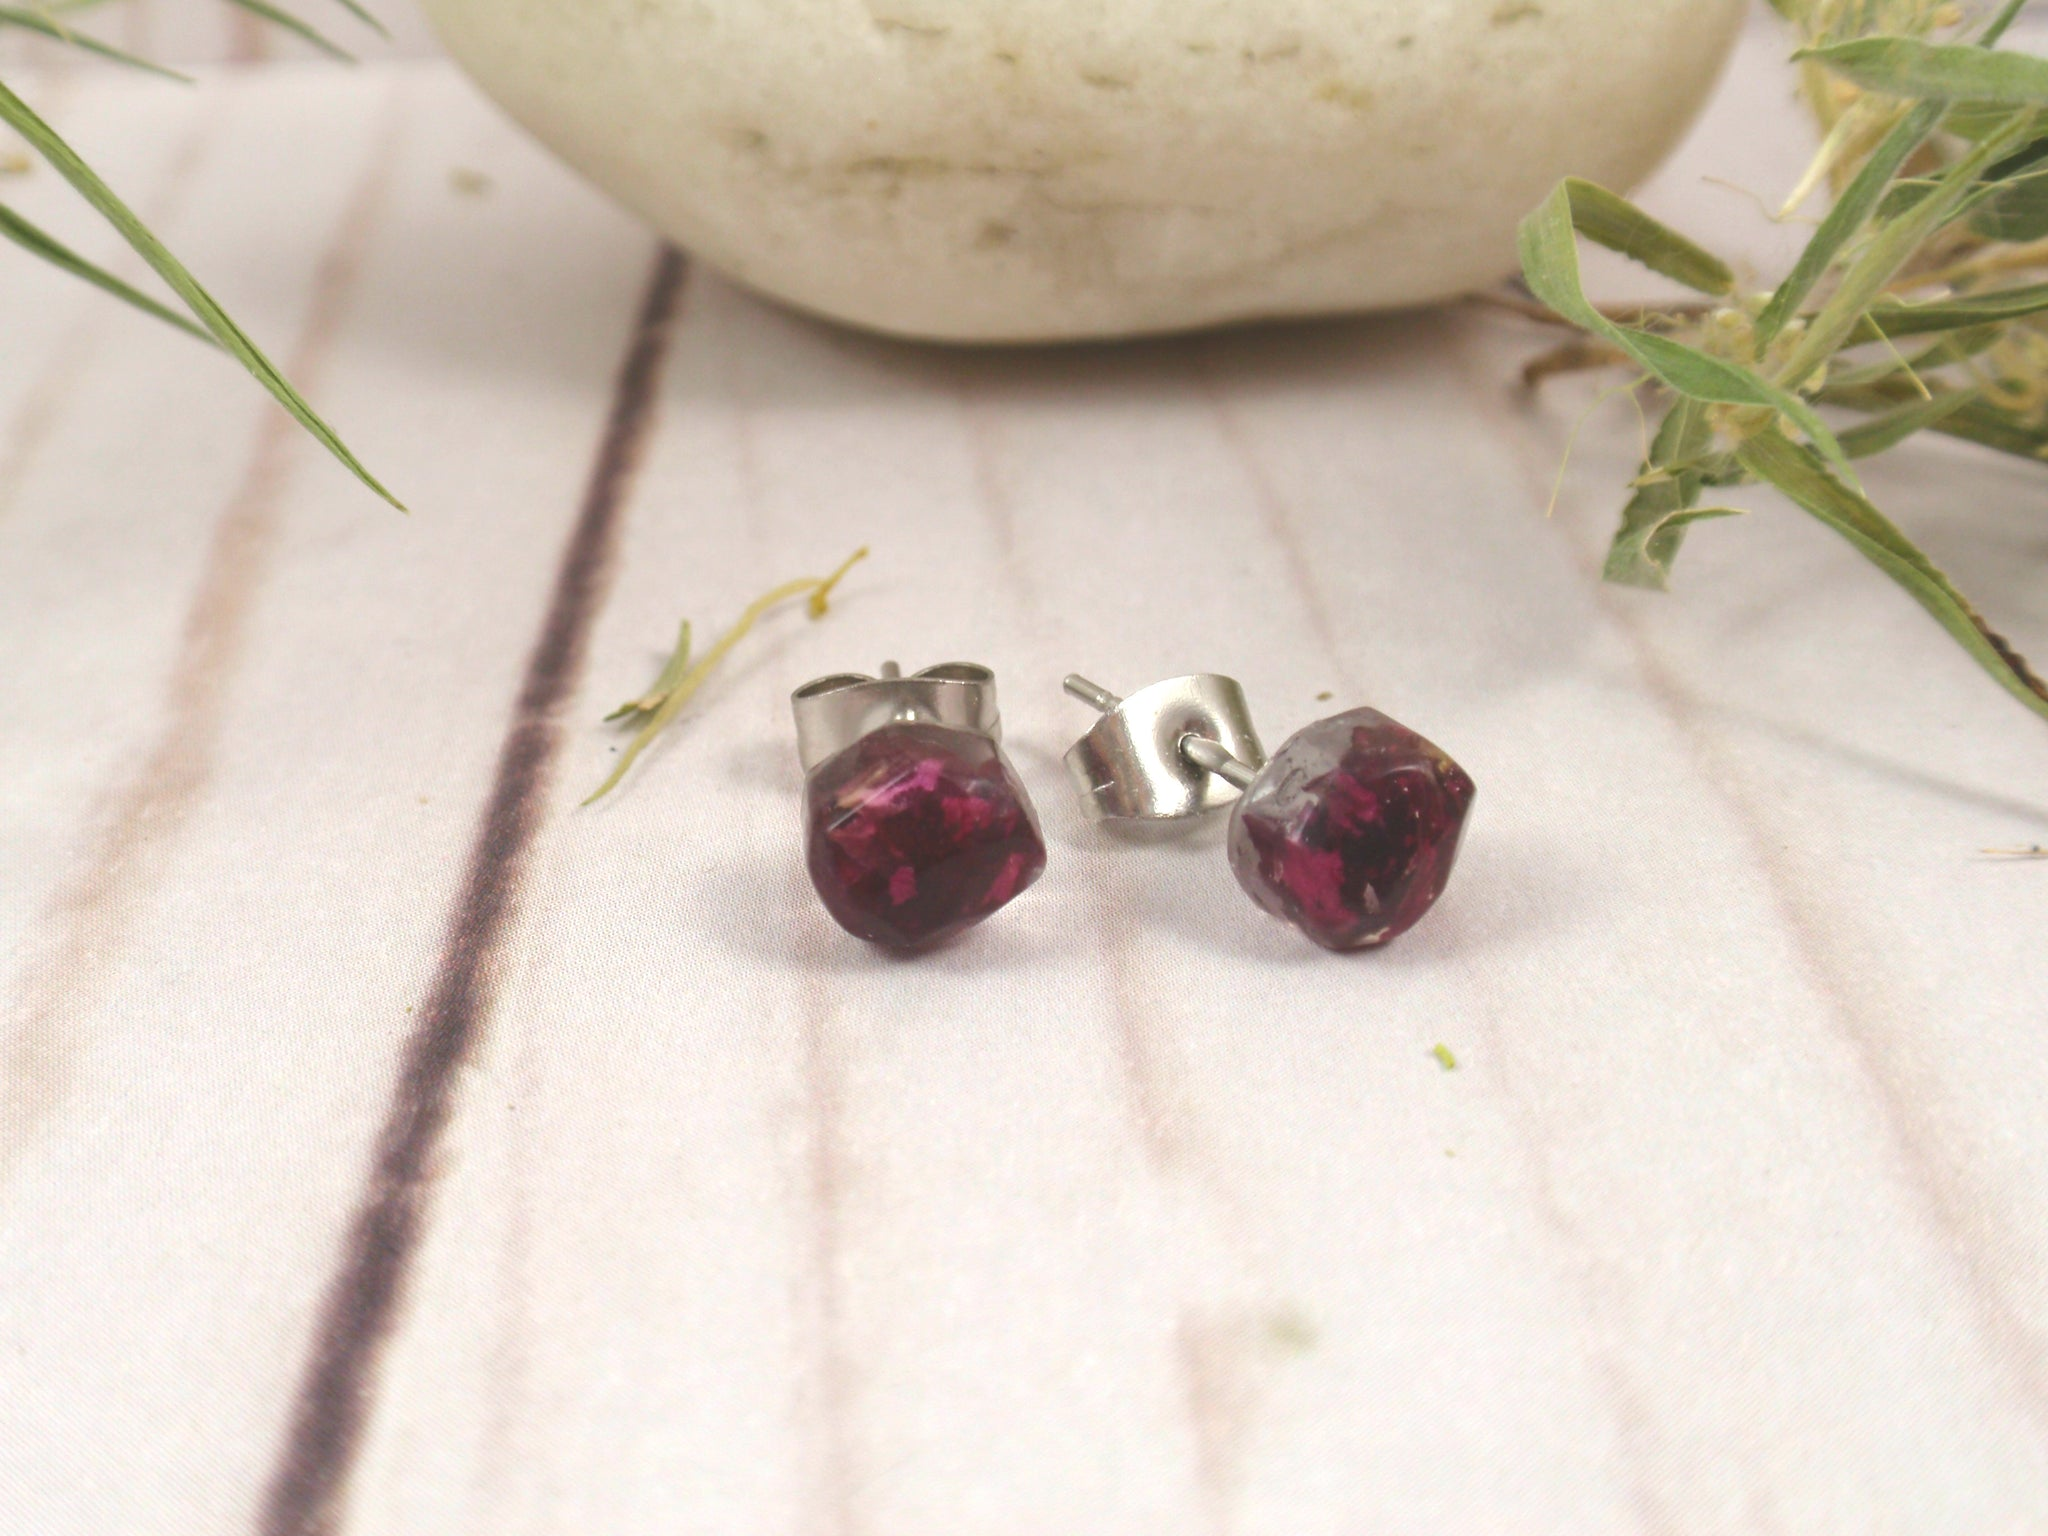 Rose stud earrings, real flower botanical jewelry